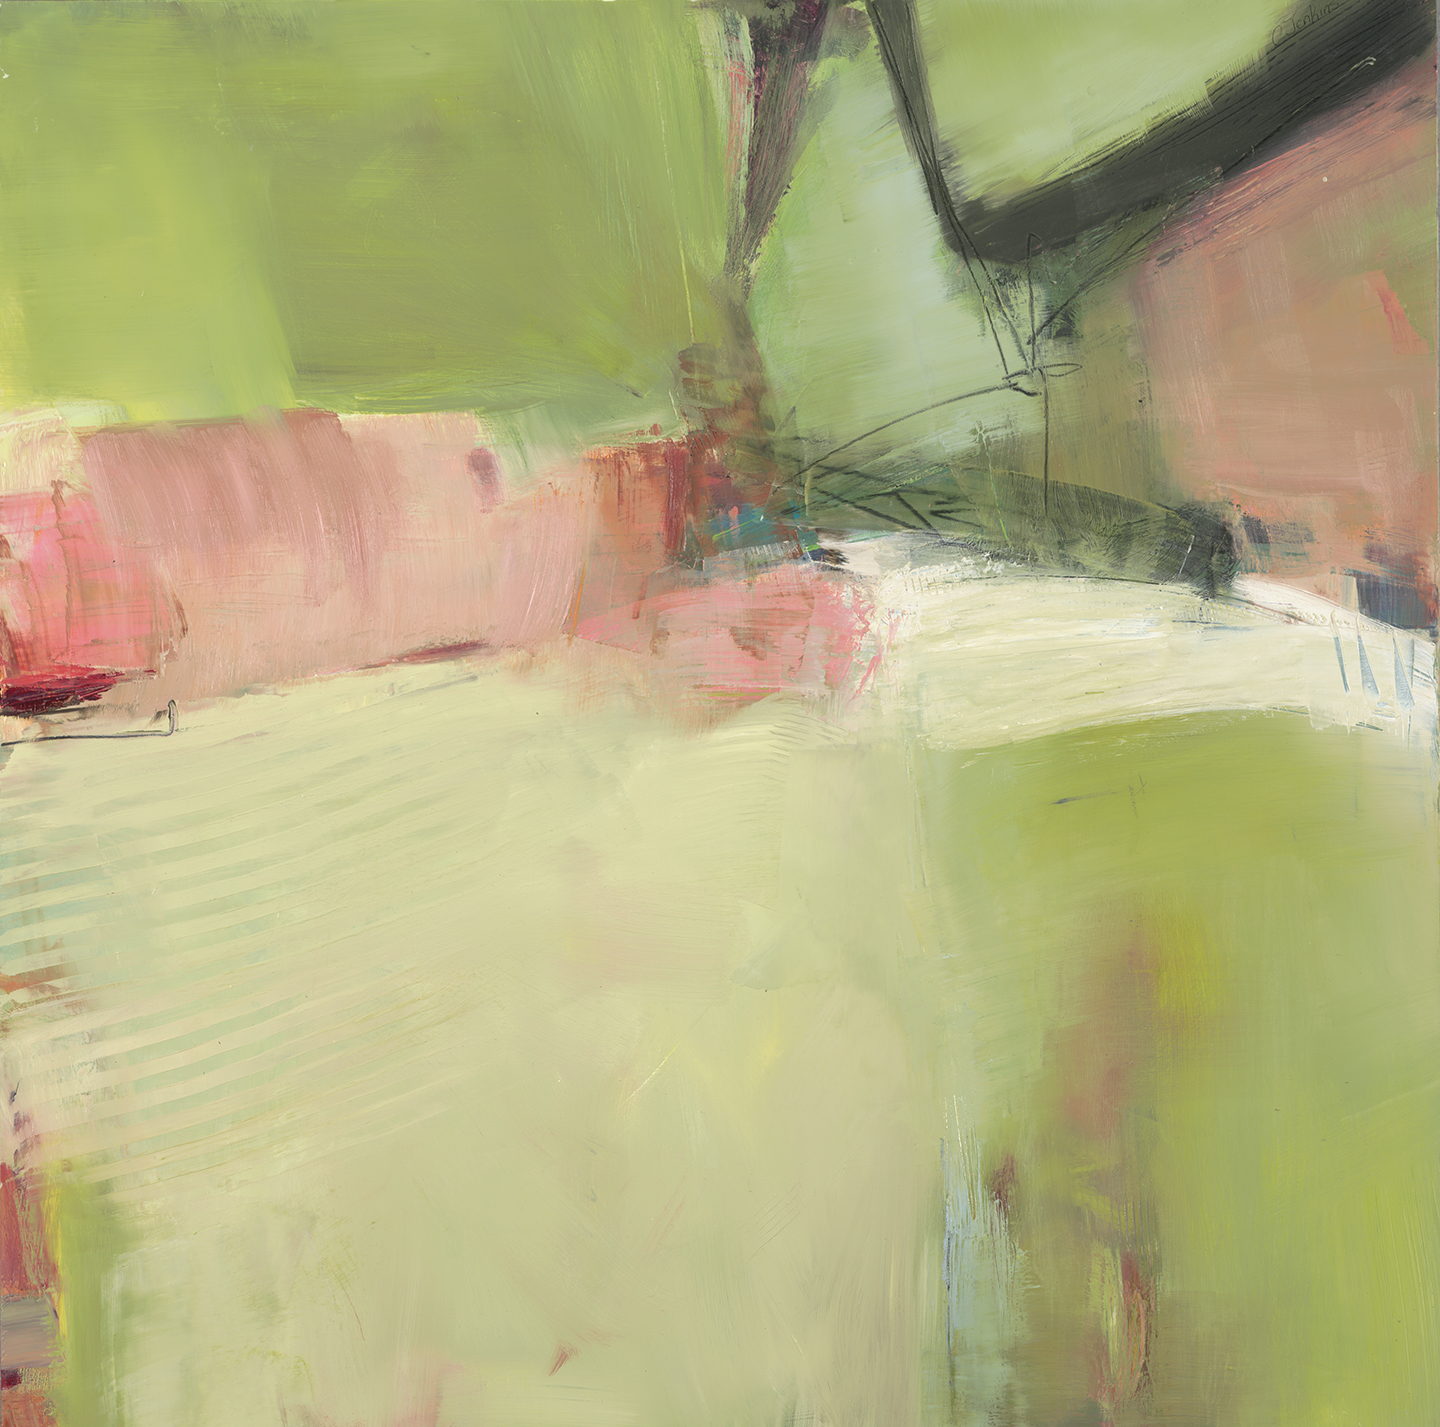 Layers of pink and pale green oil paint create this strong, yet delicate abstract painting.